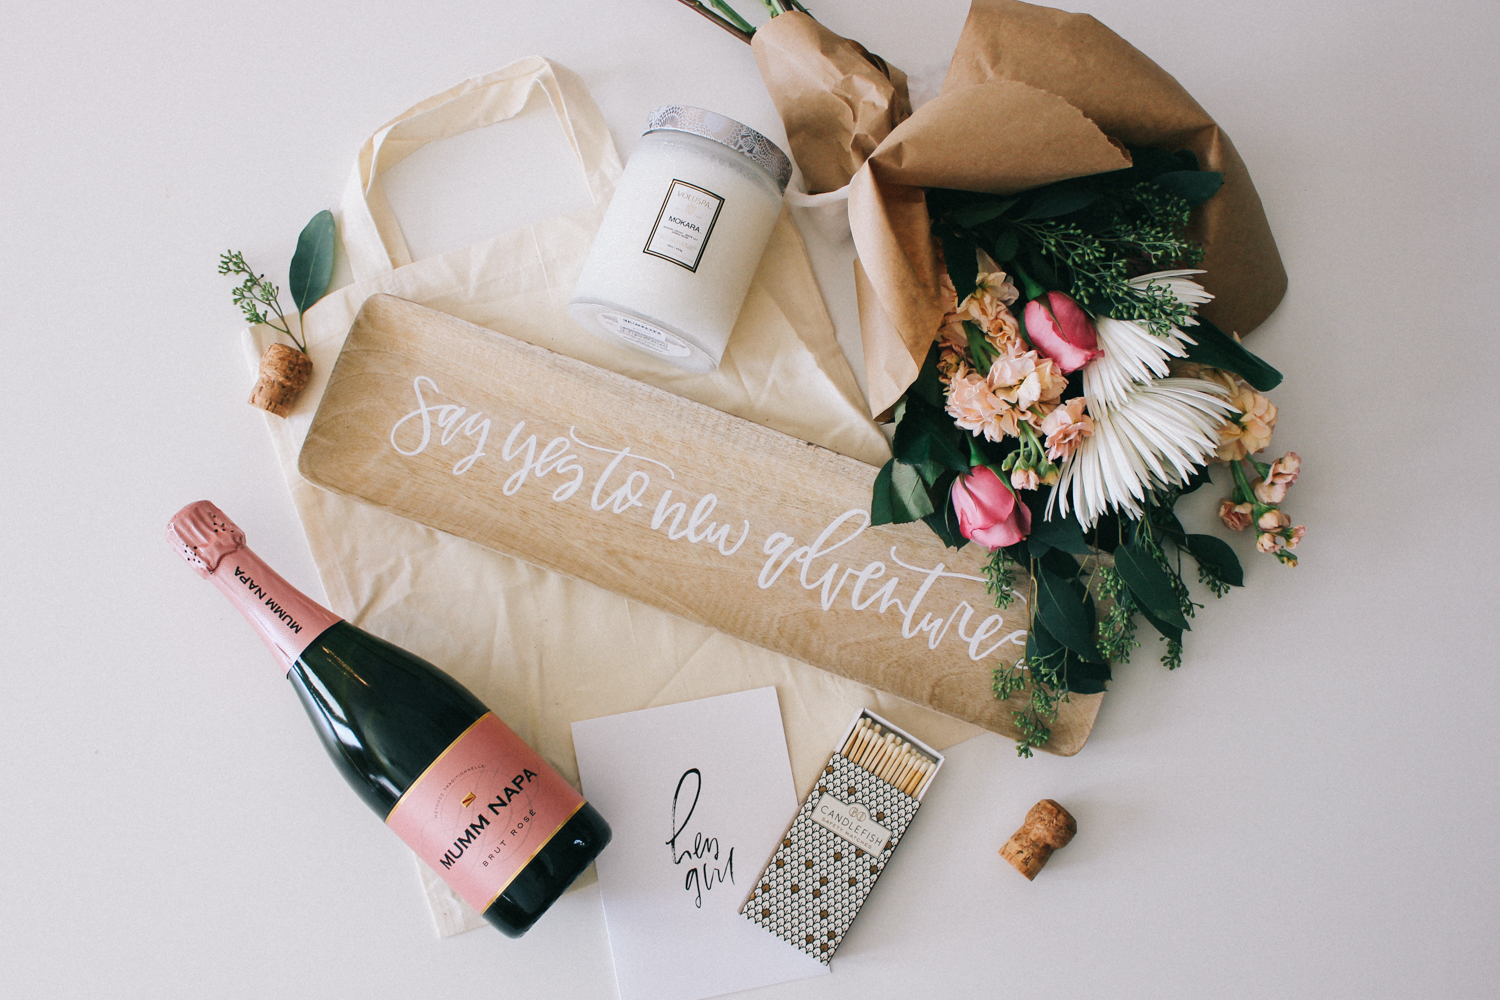 Simple Ideas For A House Warming Or Hostess Gift Lauren Saylor Stationery Interiors Design